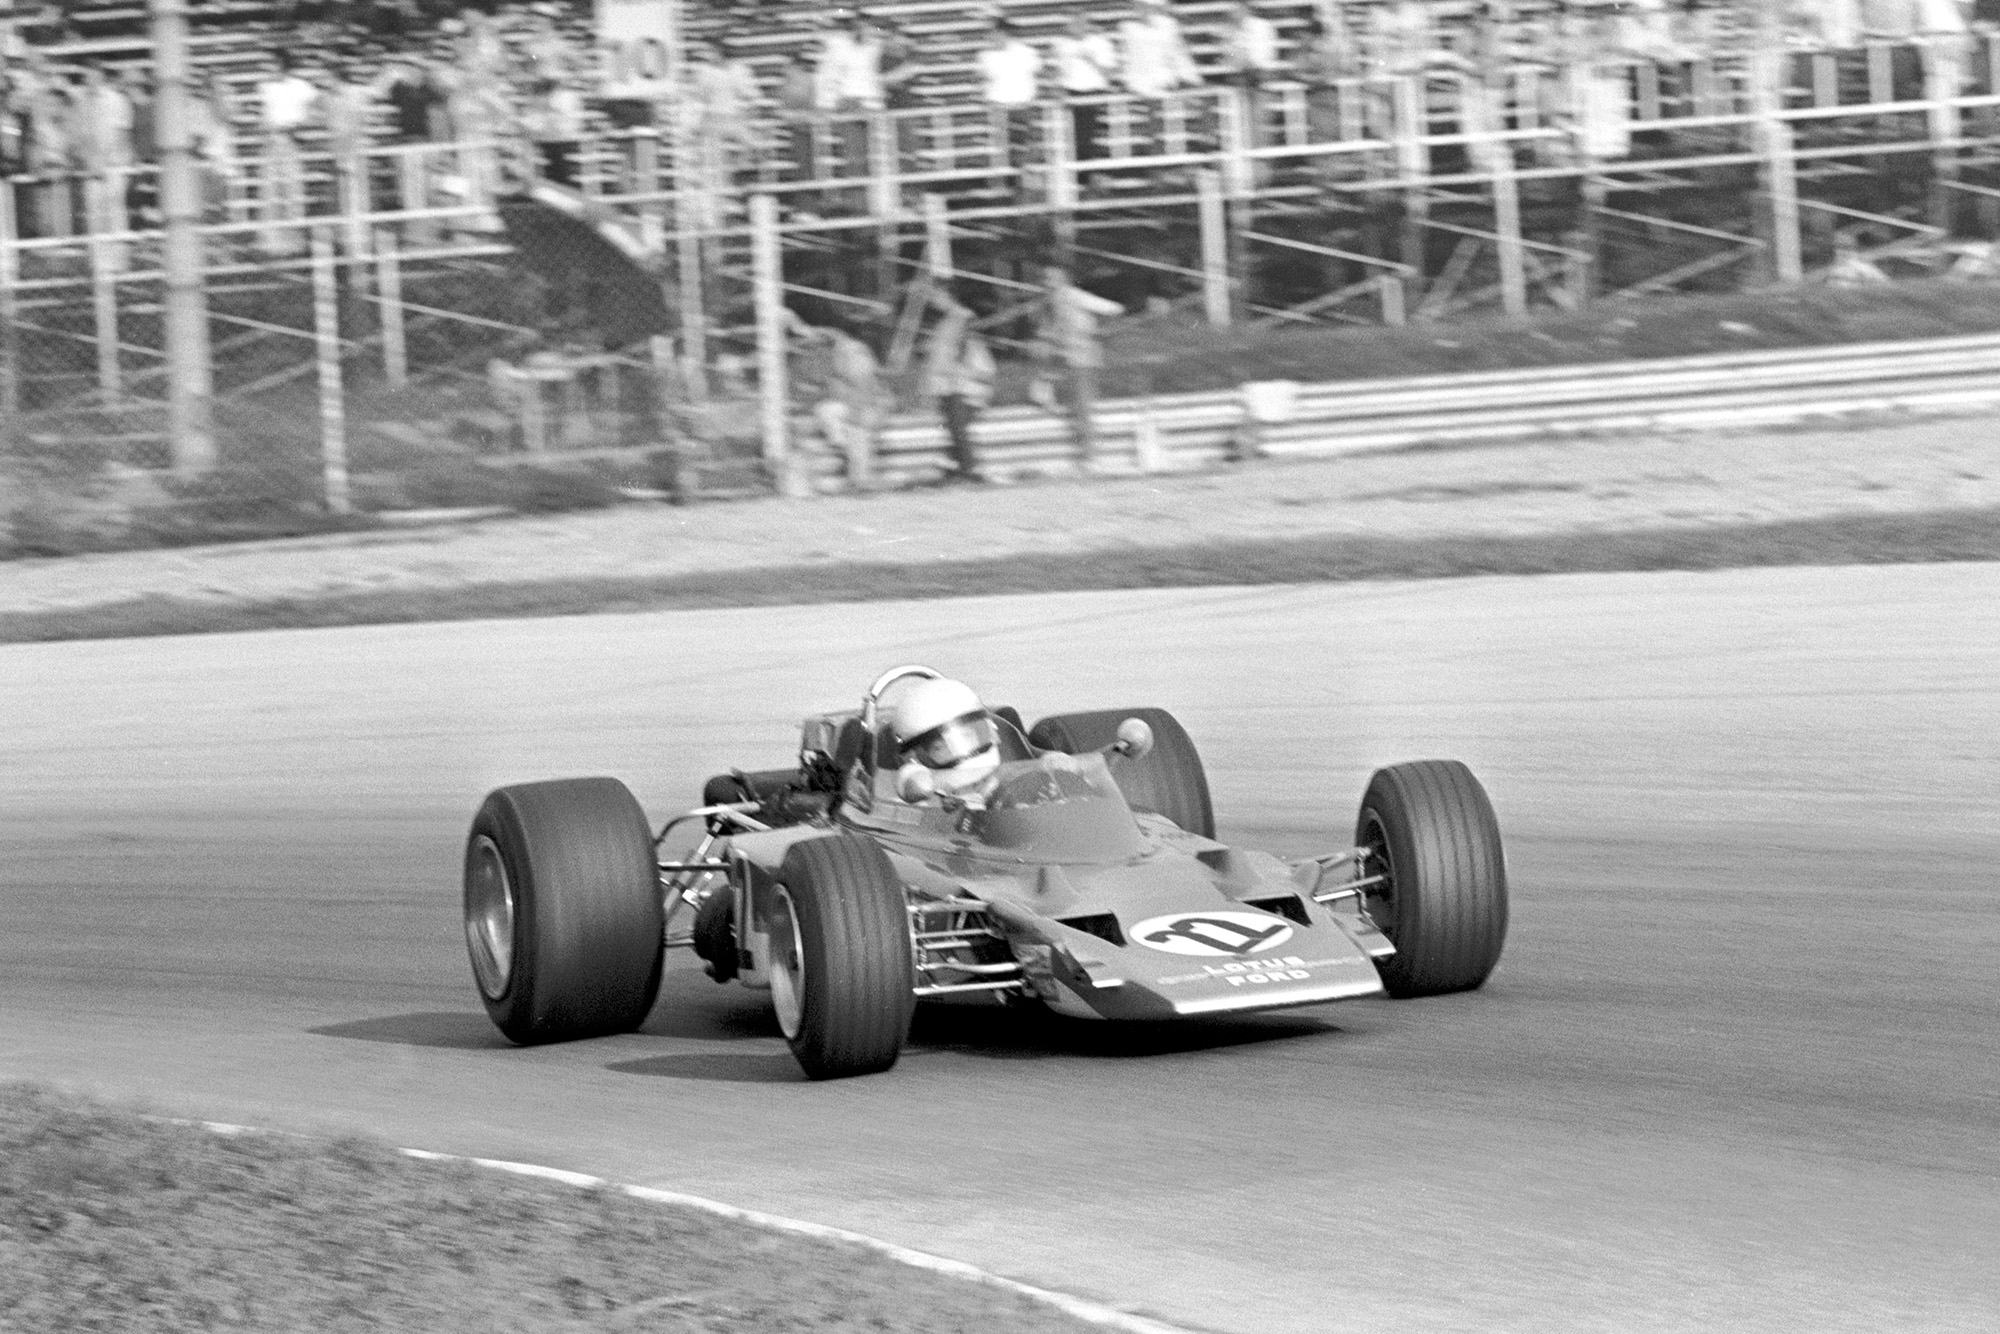 Jochen Rindt in his Lotus with no wings before his fatal crash during the 1970 Italian Grand Prix